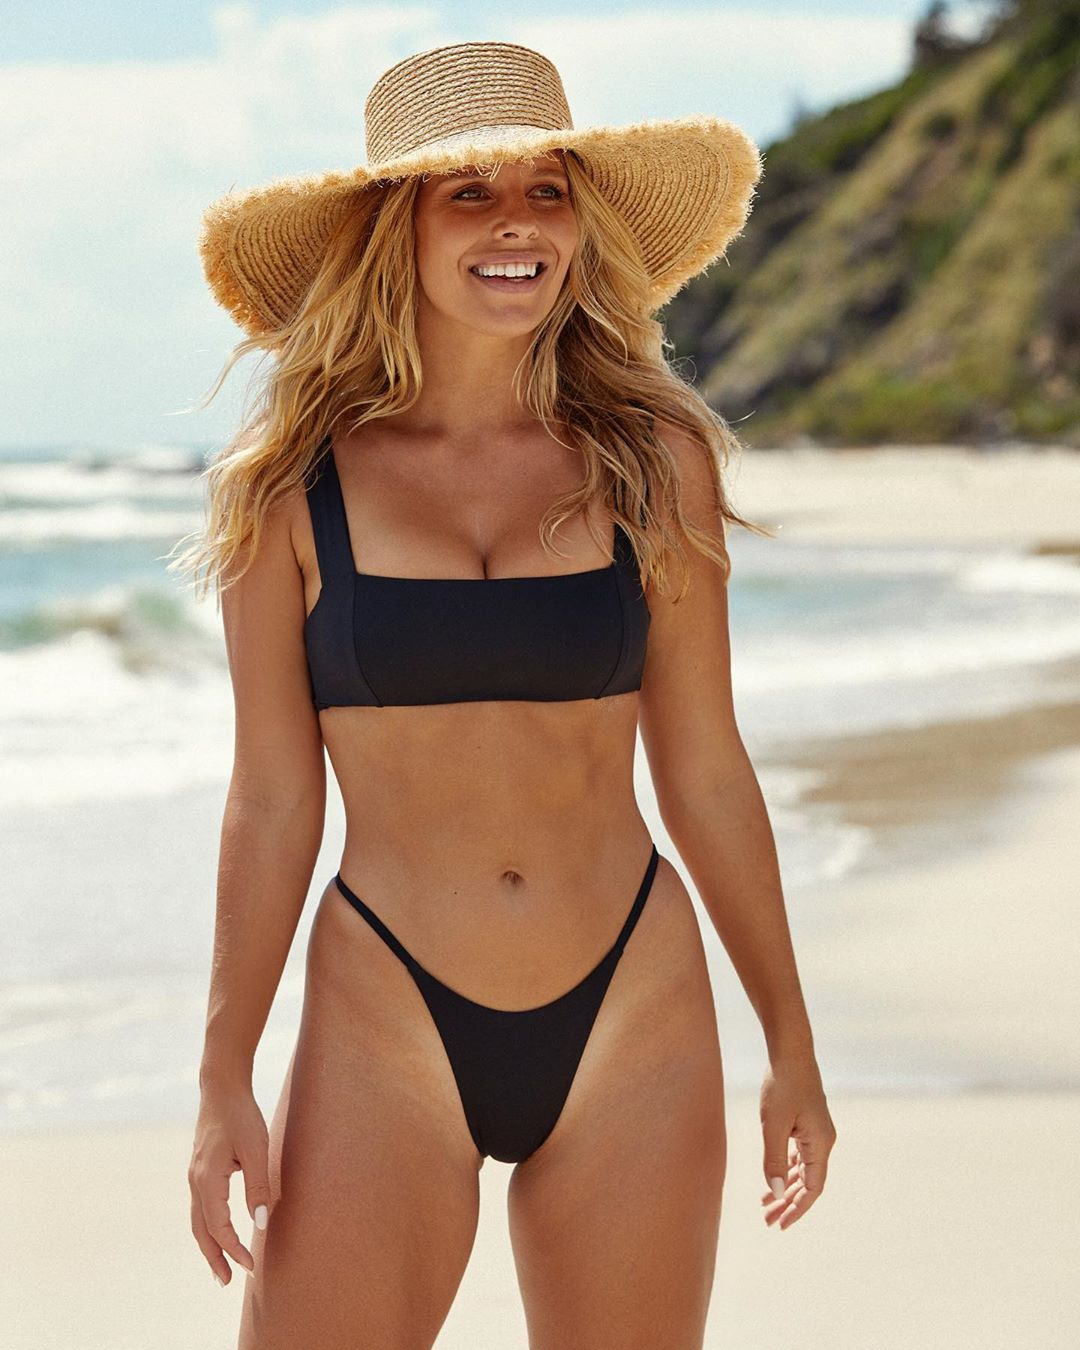 Natasha Oakley, Monday Swimwear  bikini bottom, black  bikini bottom, black Monday Swimwear bikini top, make the most, tiny, skimpy, bikini body, sexy, cheeky